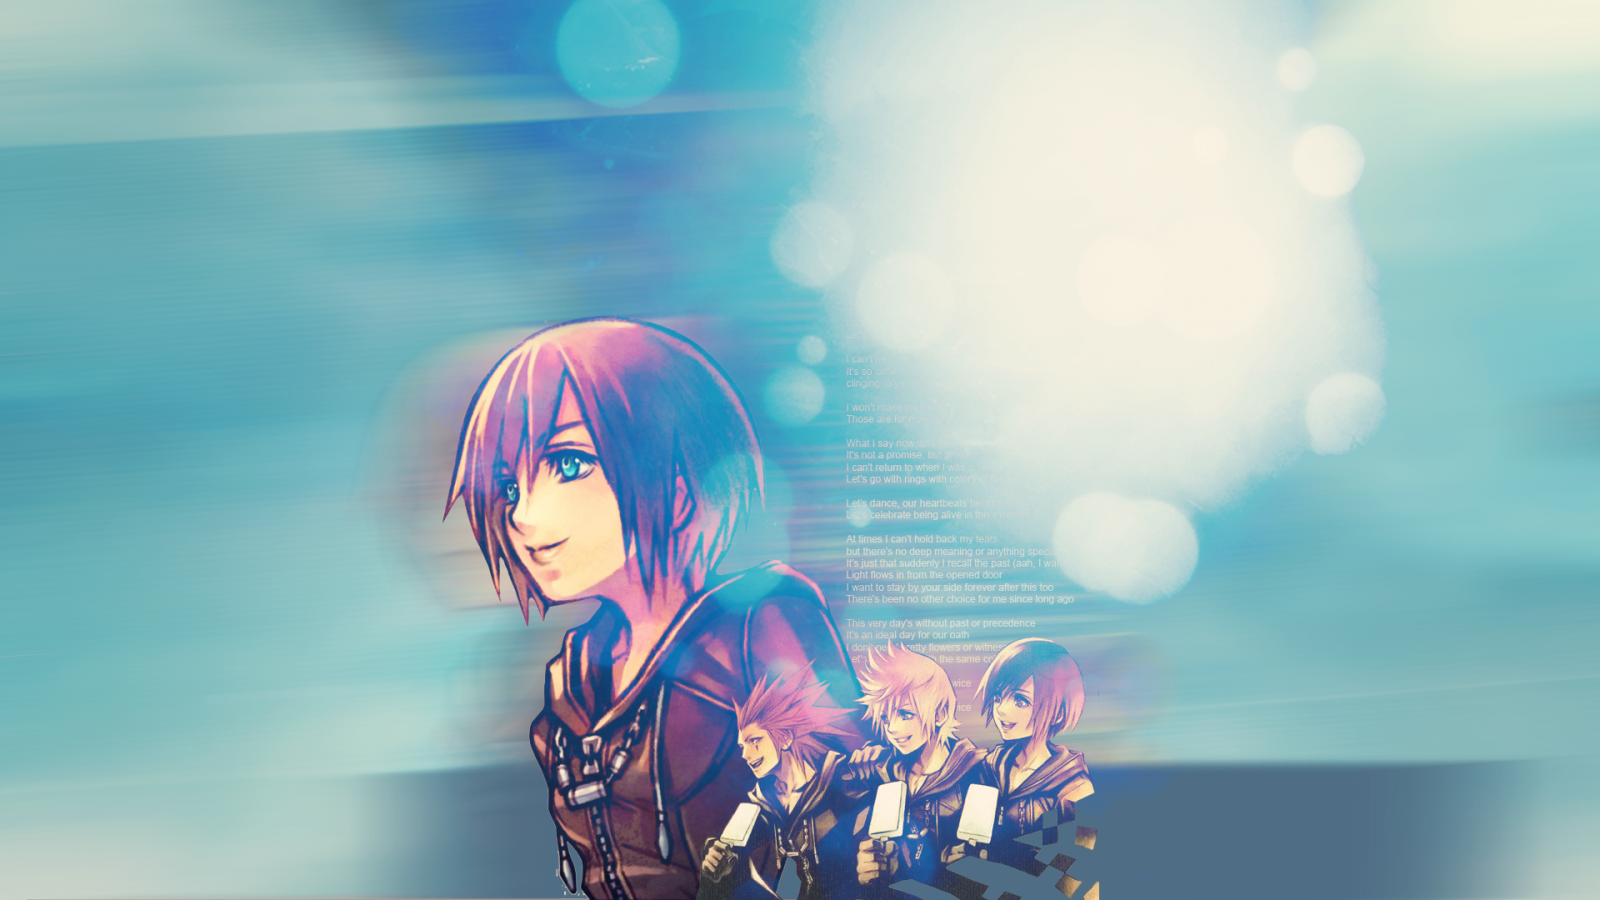 Xion the Puppet